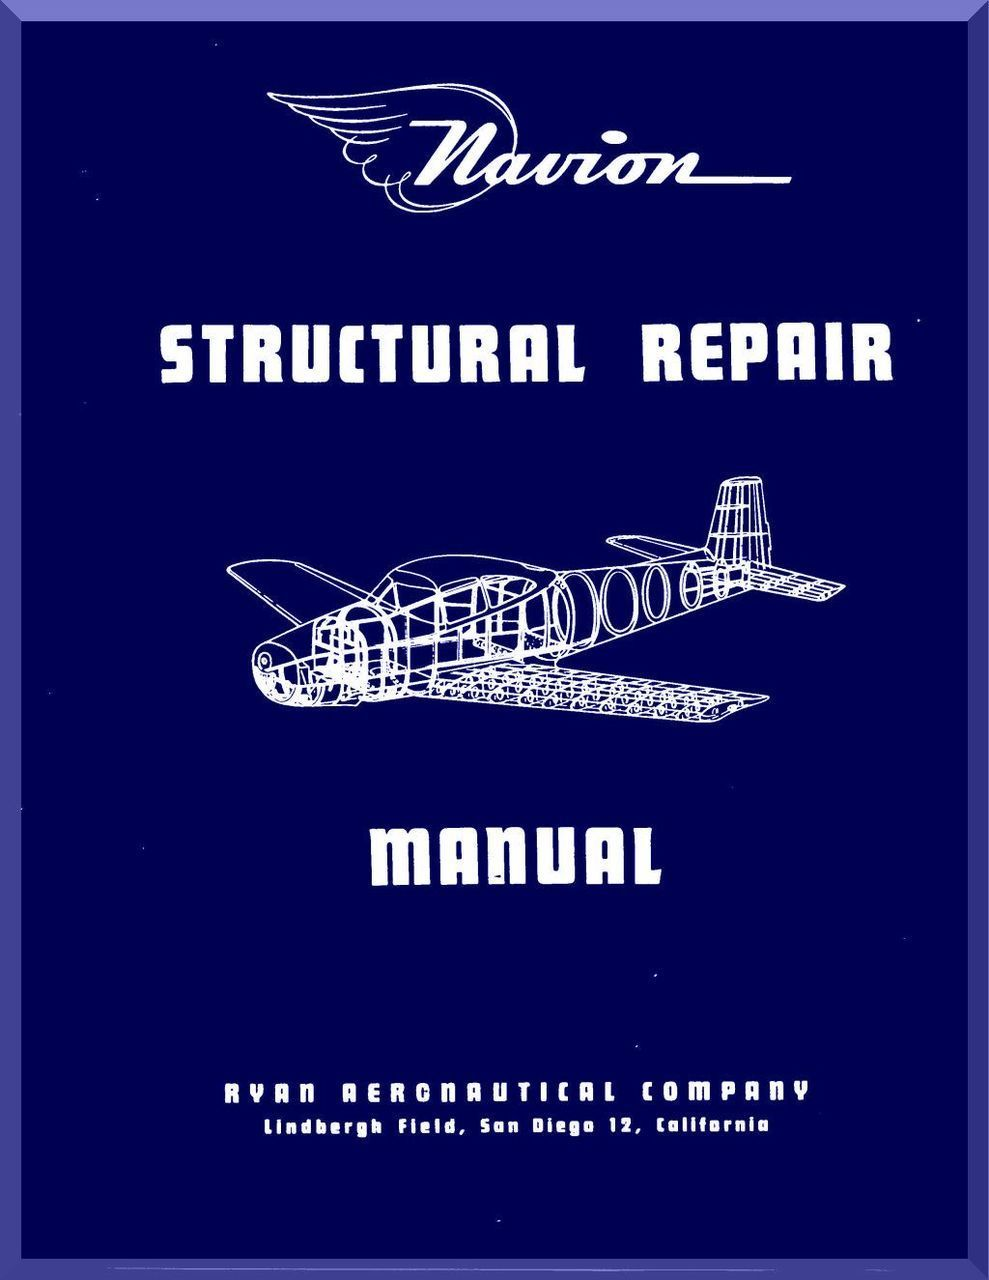 Ryan Navion Airplane Structural Repair Manual - 1947 - Aircraft Reports - Manuals  Aircraft Helicopter Engines Propellers Blueprints Publications